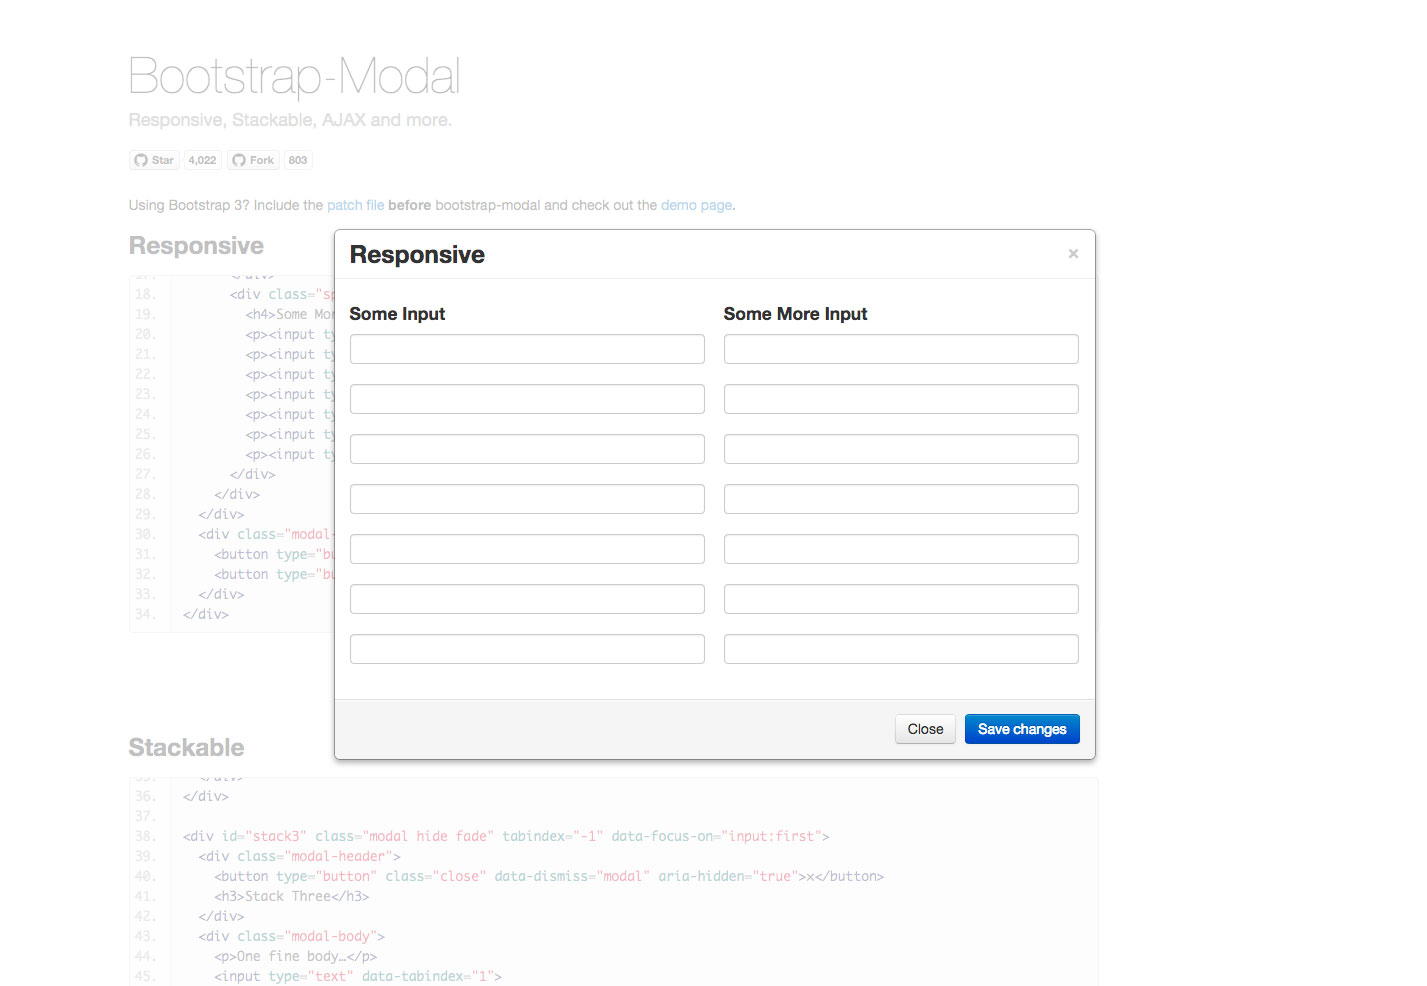 bootstrap-modale